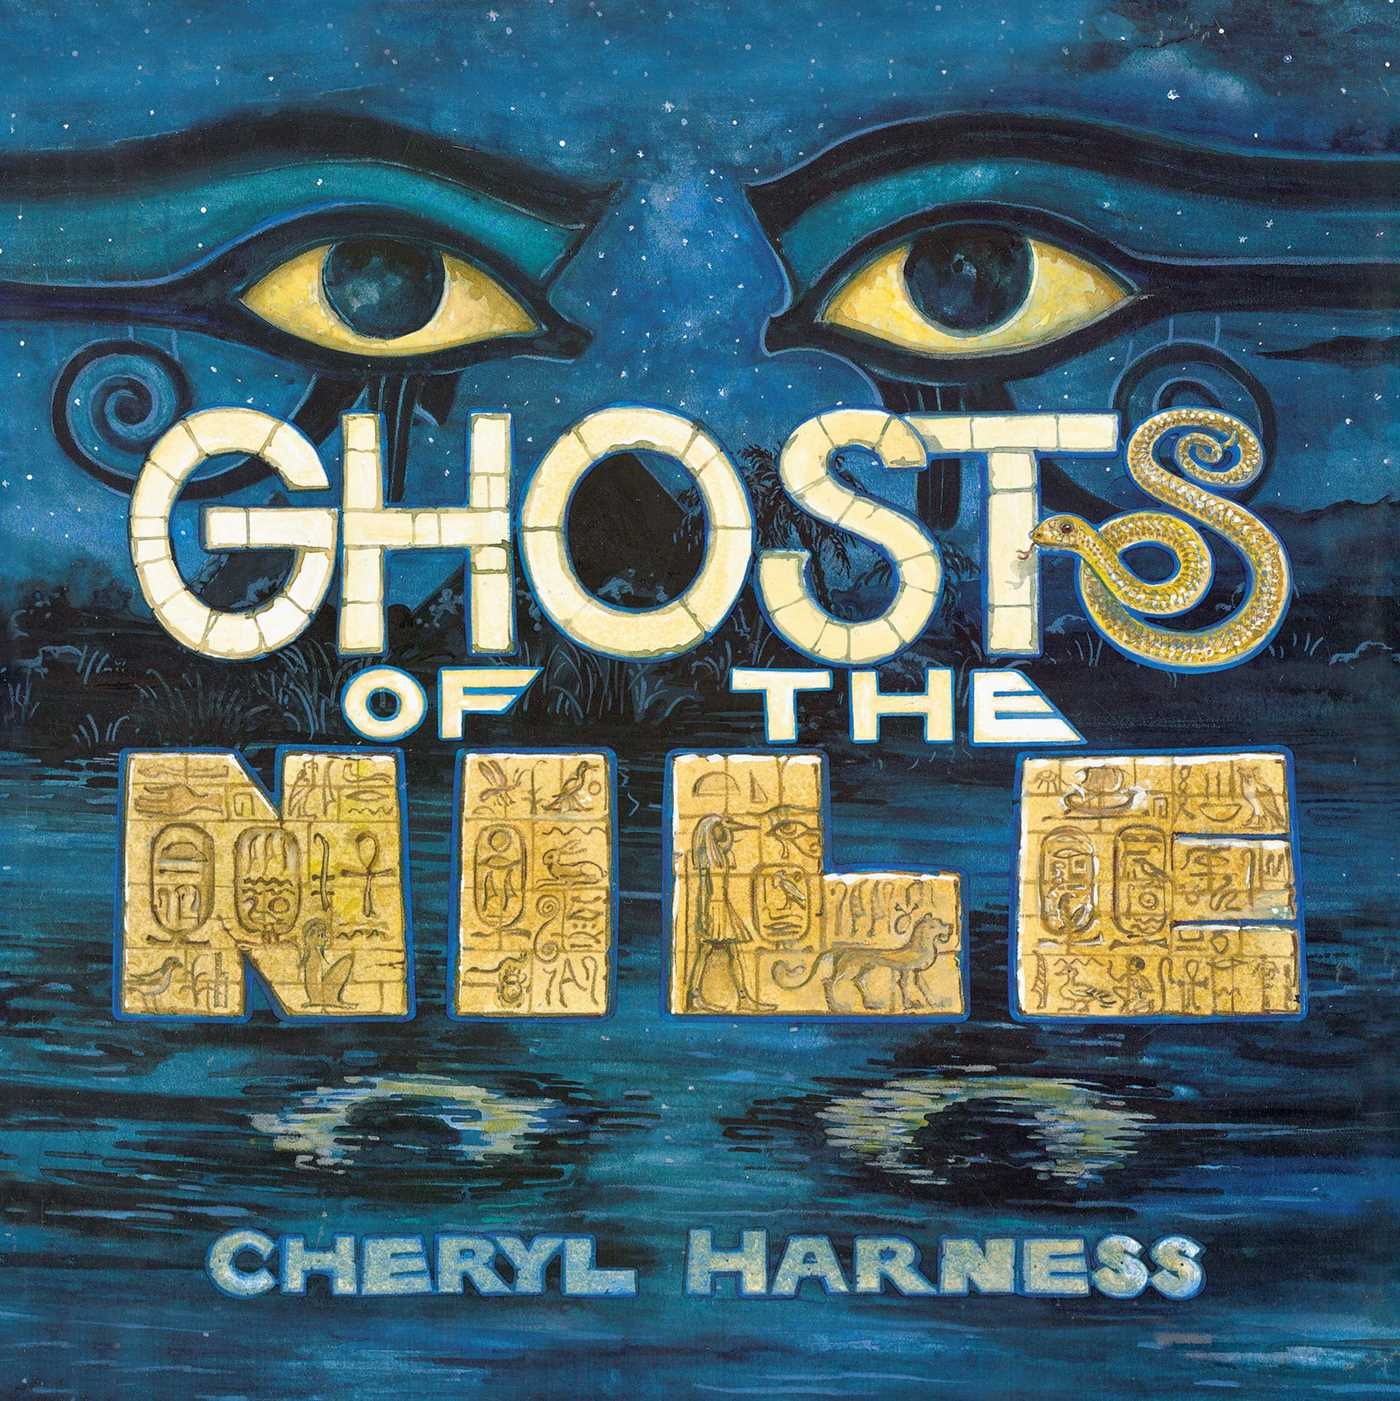 Ghosts of the nile 9781442422001 hr